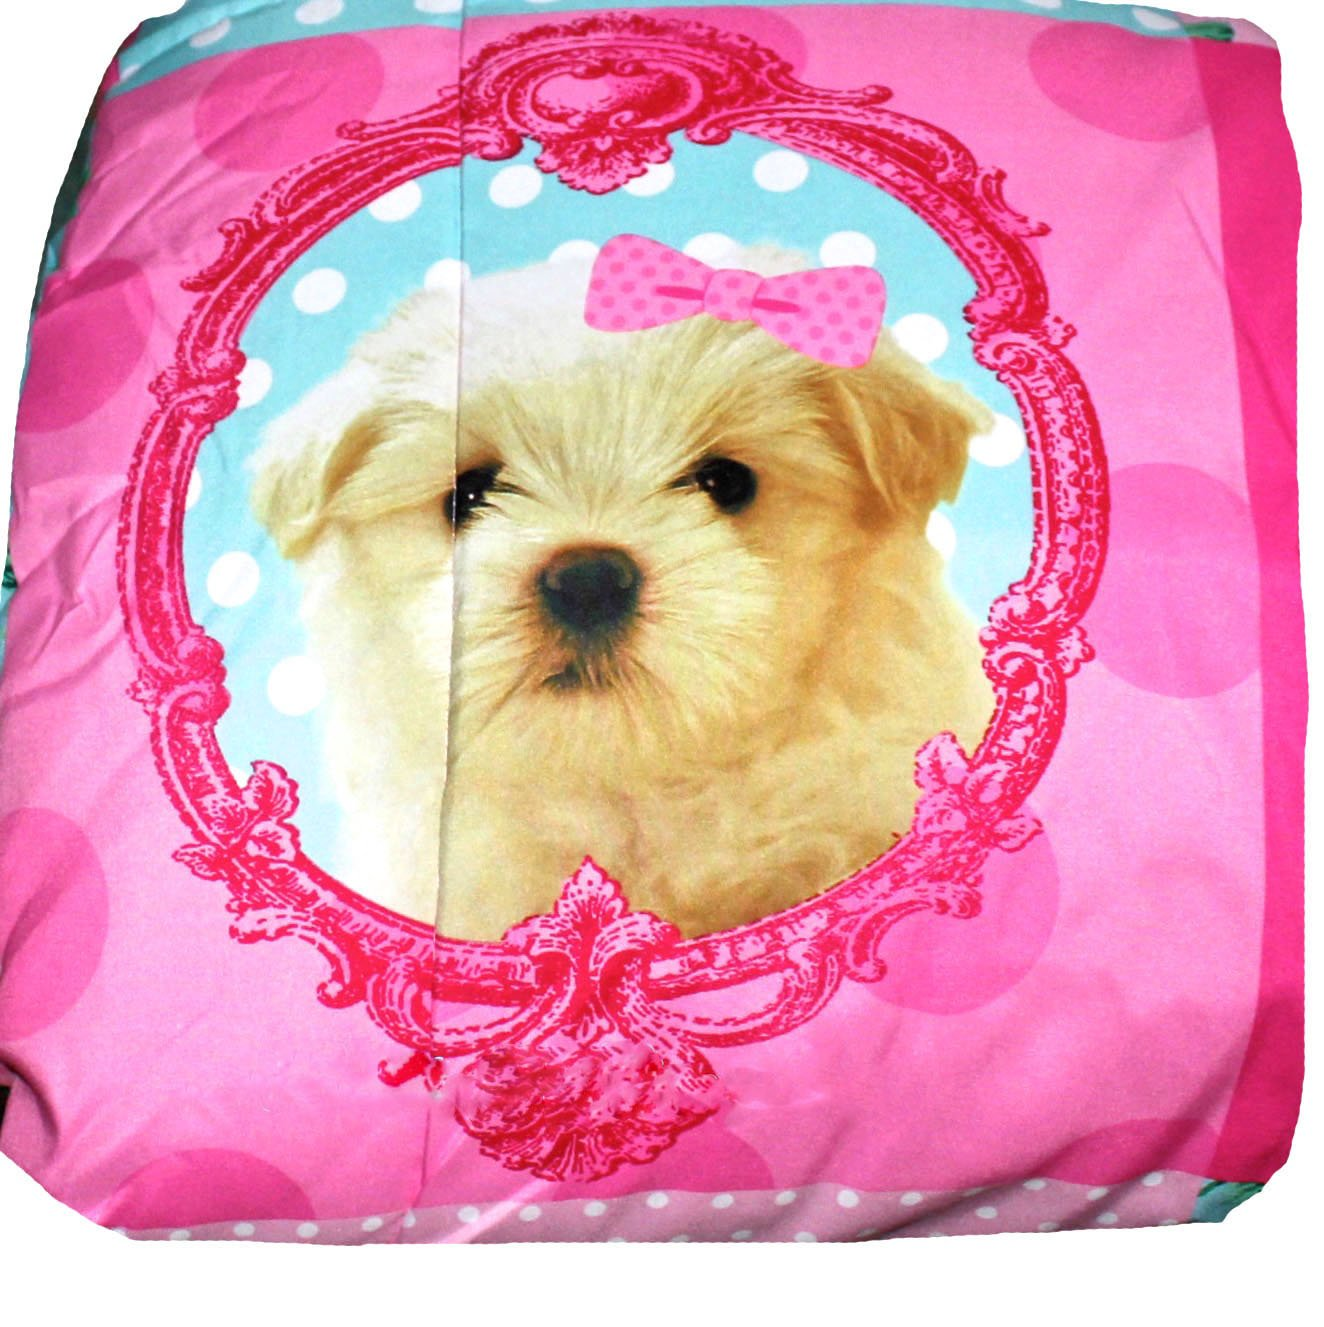 Princess Puppy Kitty 9pc Pink Patchwork FULL/QUEEN SIZE Comforter(86'' x 86''), 2-Shams, FULL SIZE SHEET SET + TWO DECORATIVE TOSS PILLOWS!